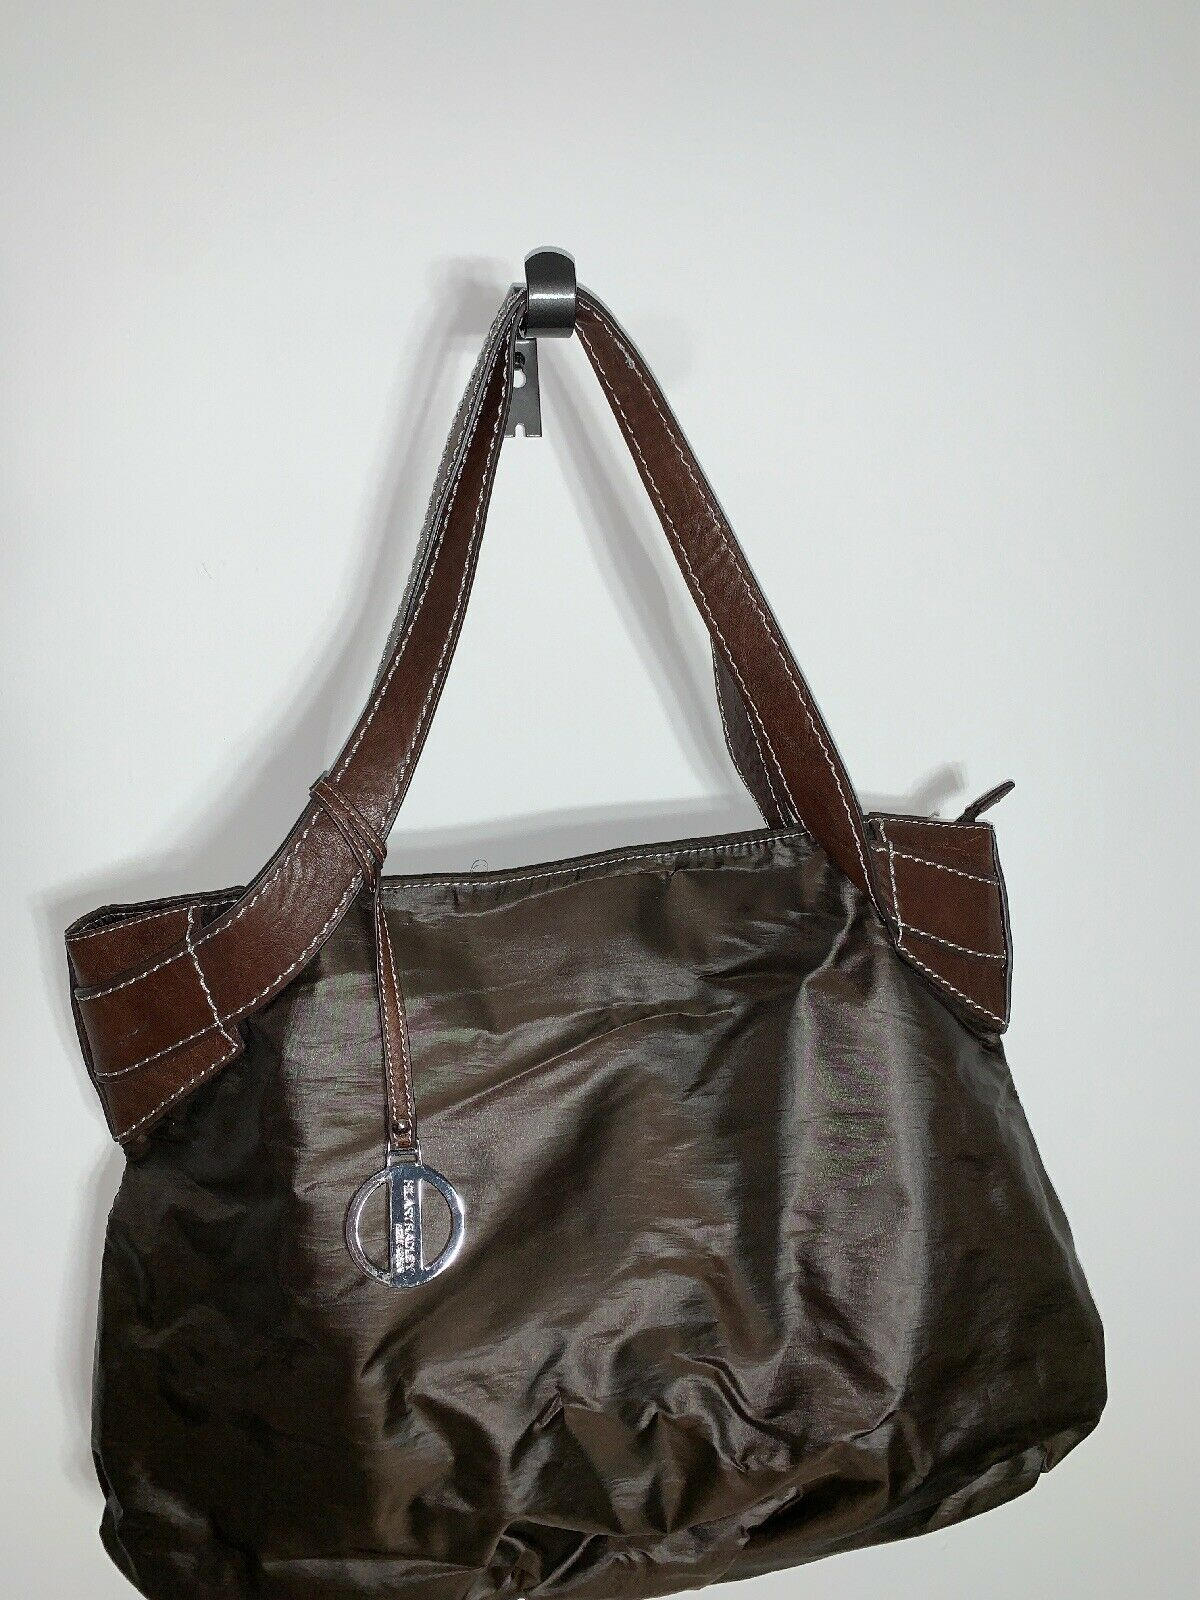 Hilary Radley Purse Bag Handbag Brown